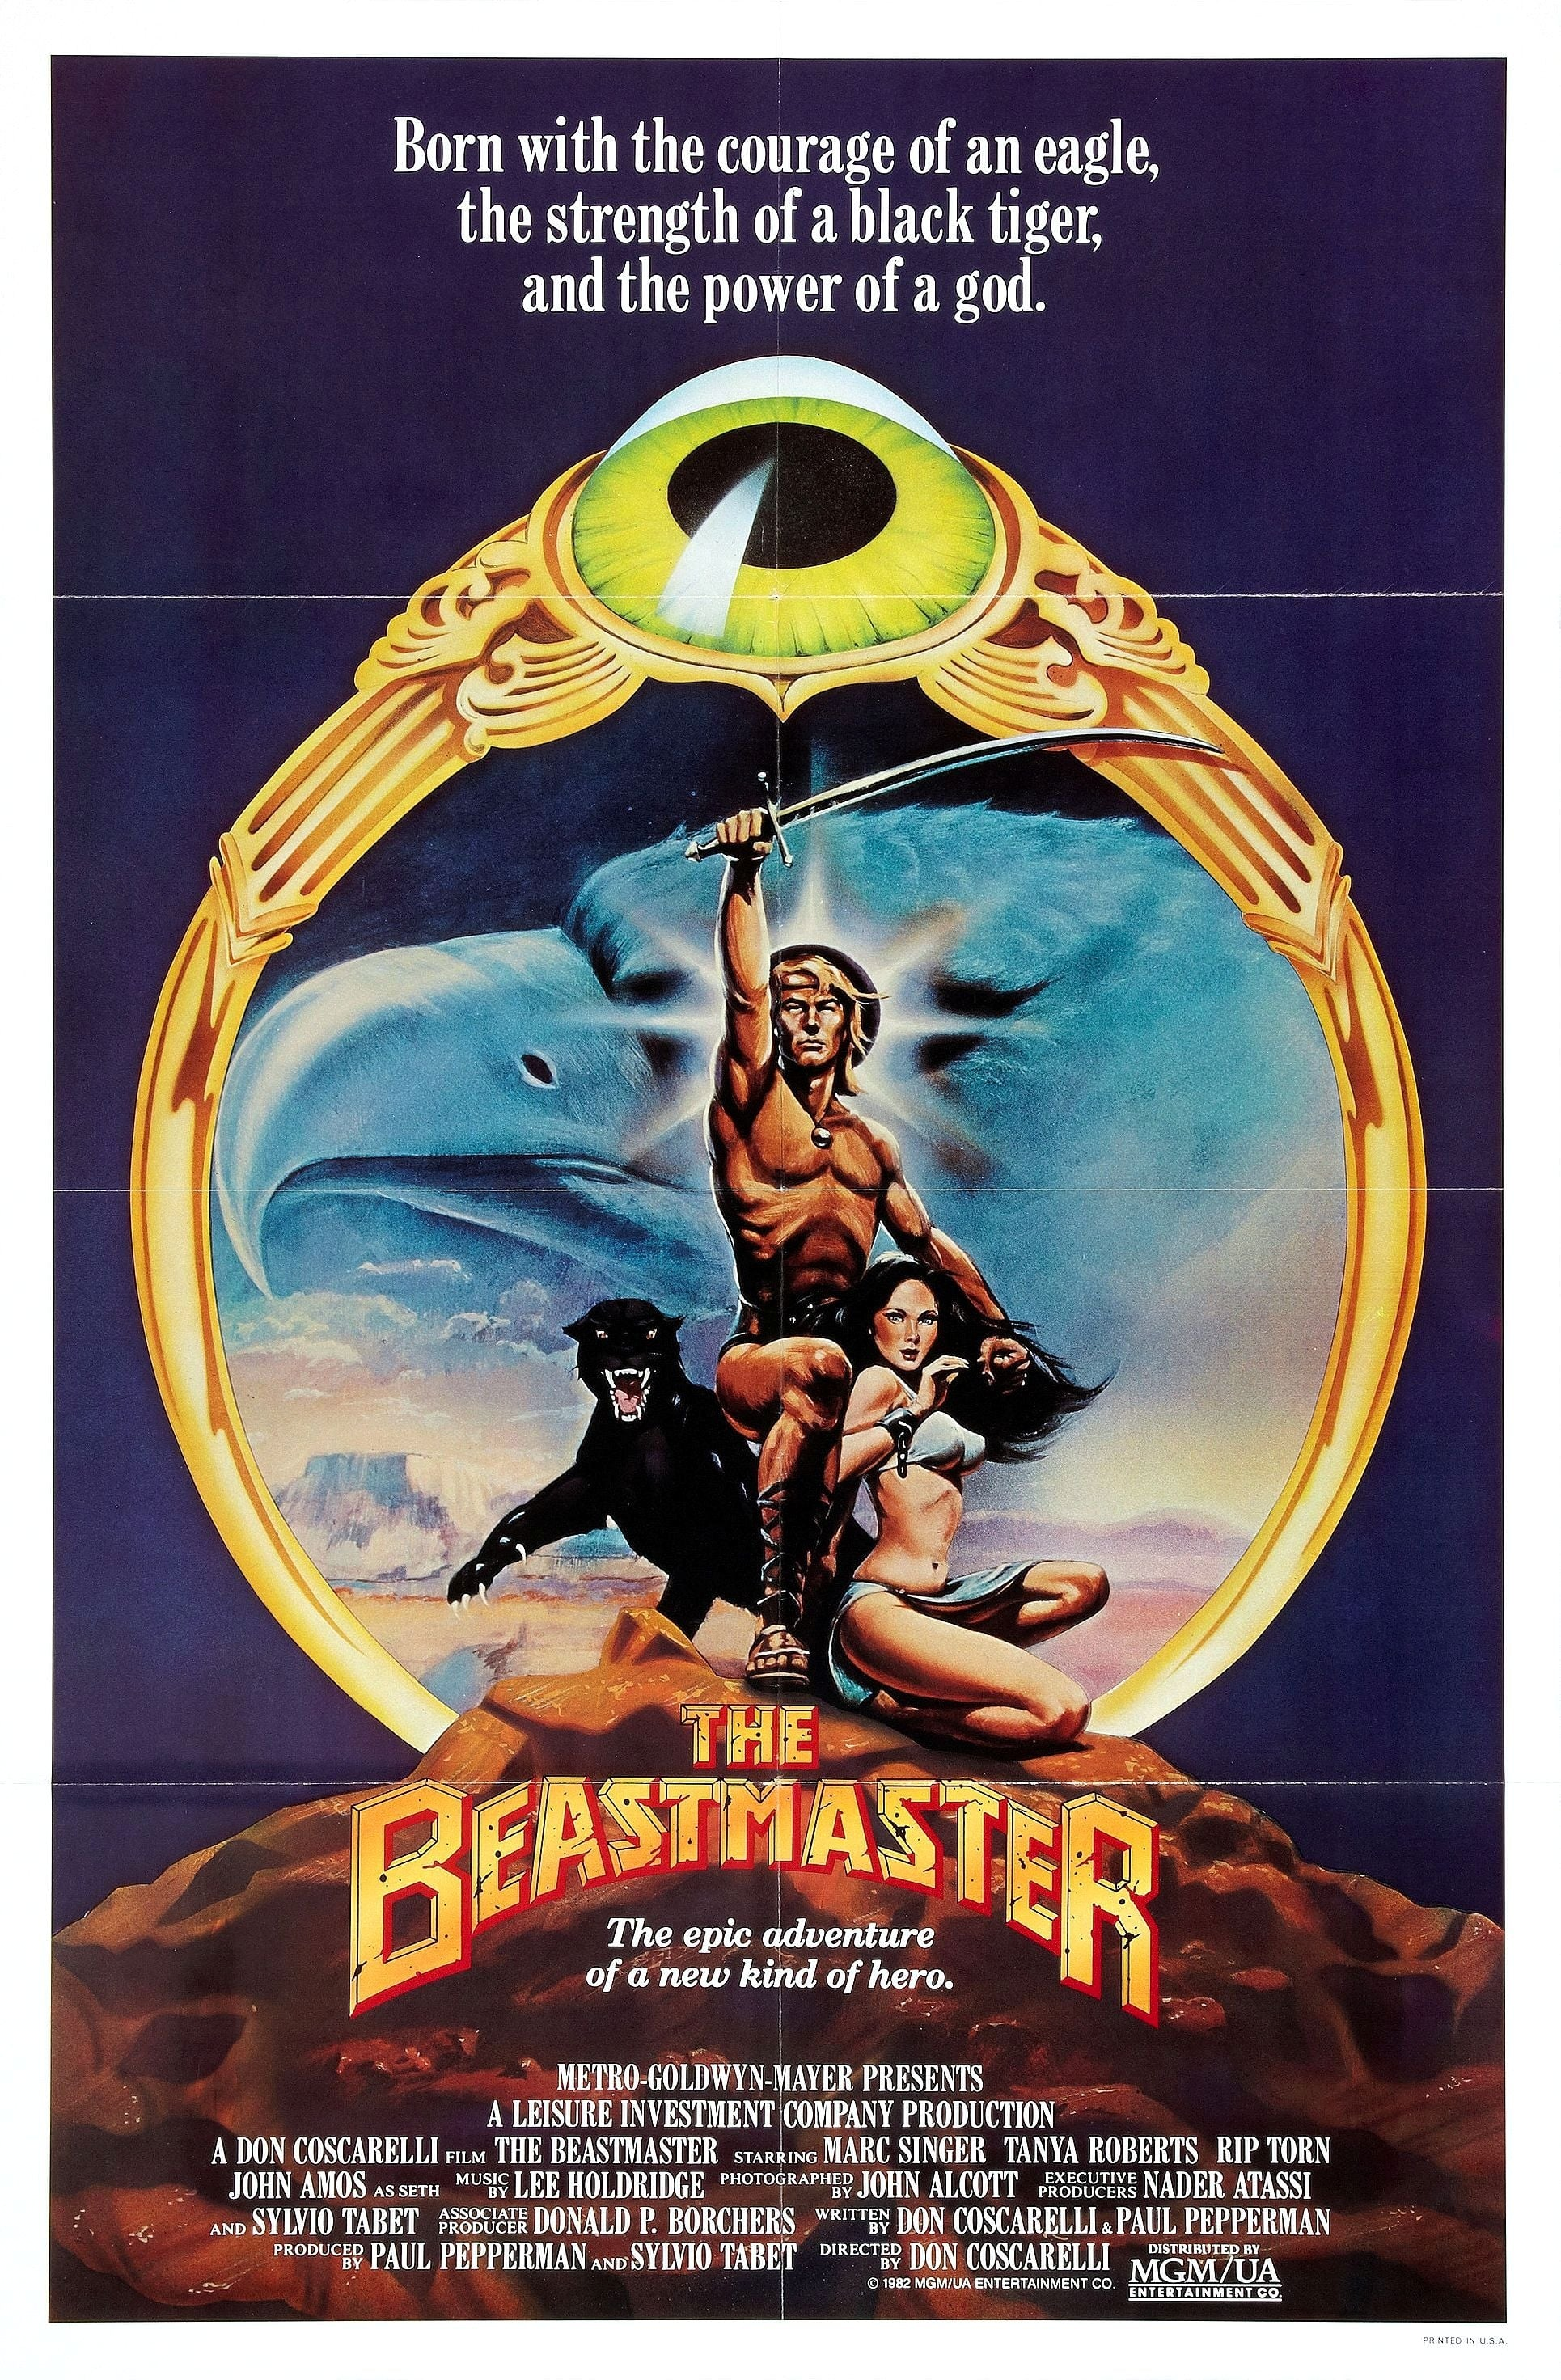 The Beastmaster